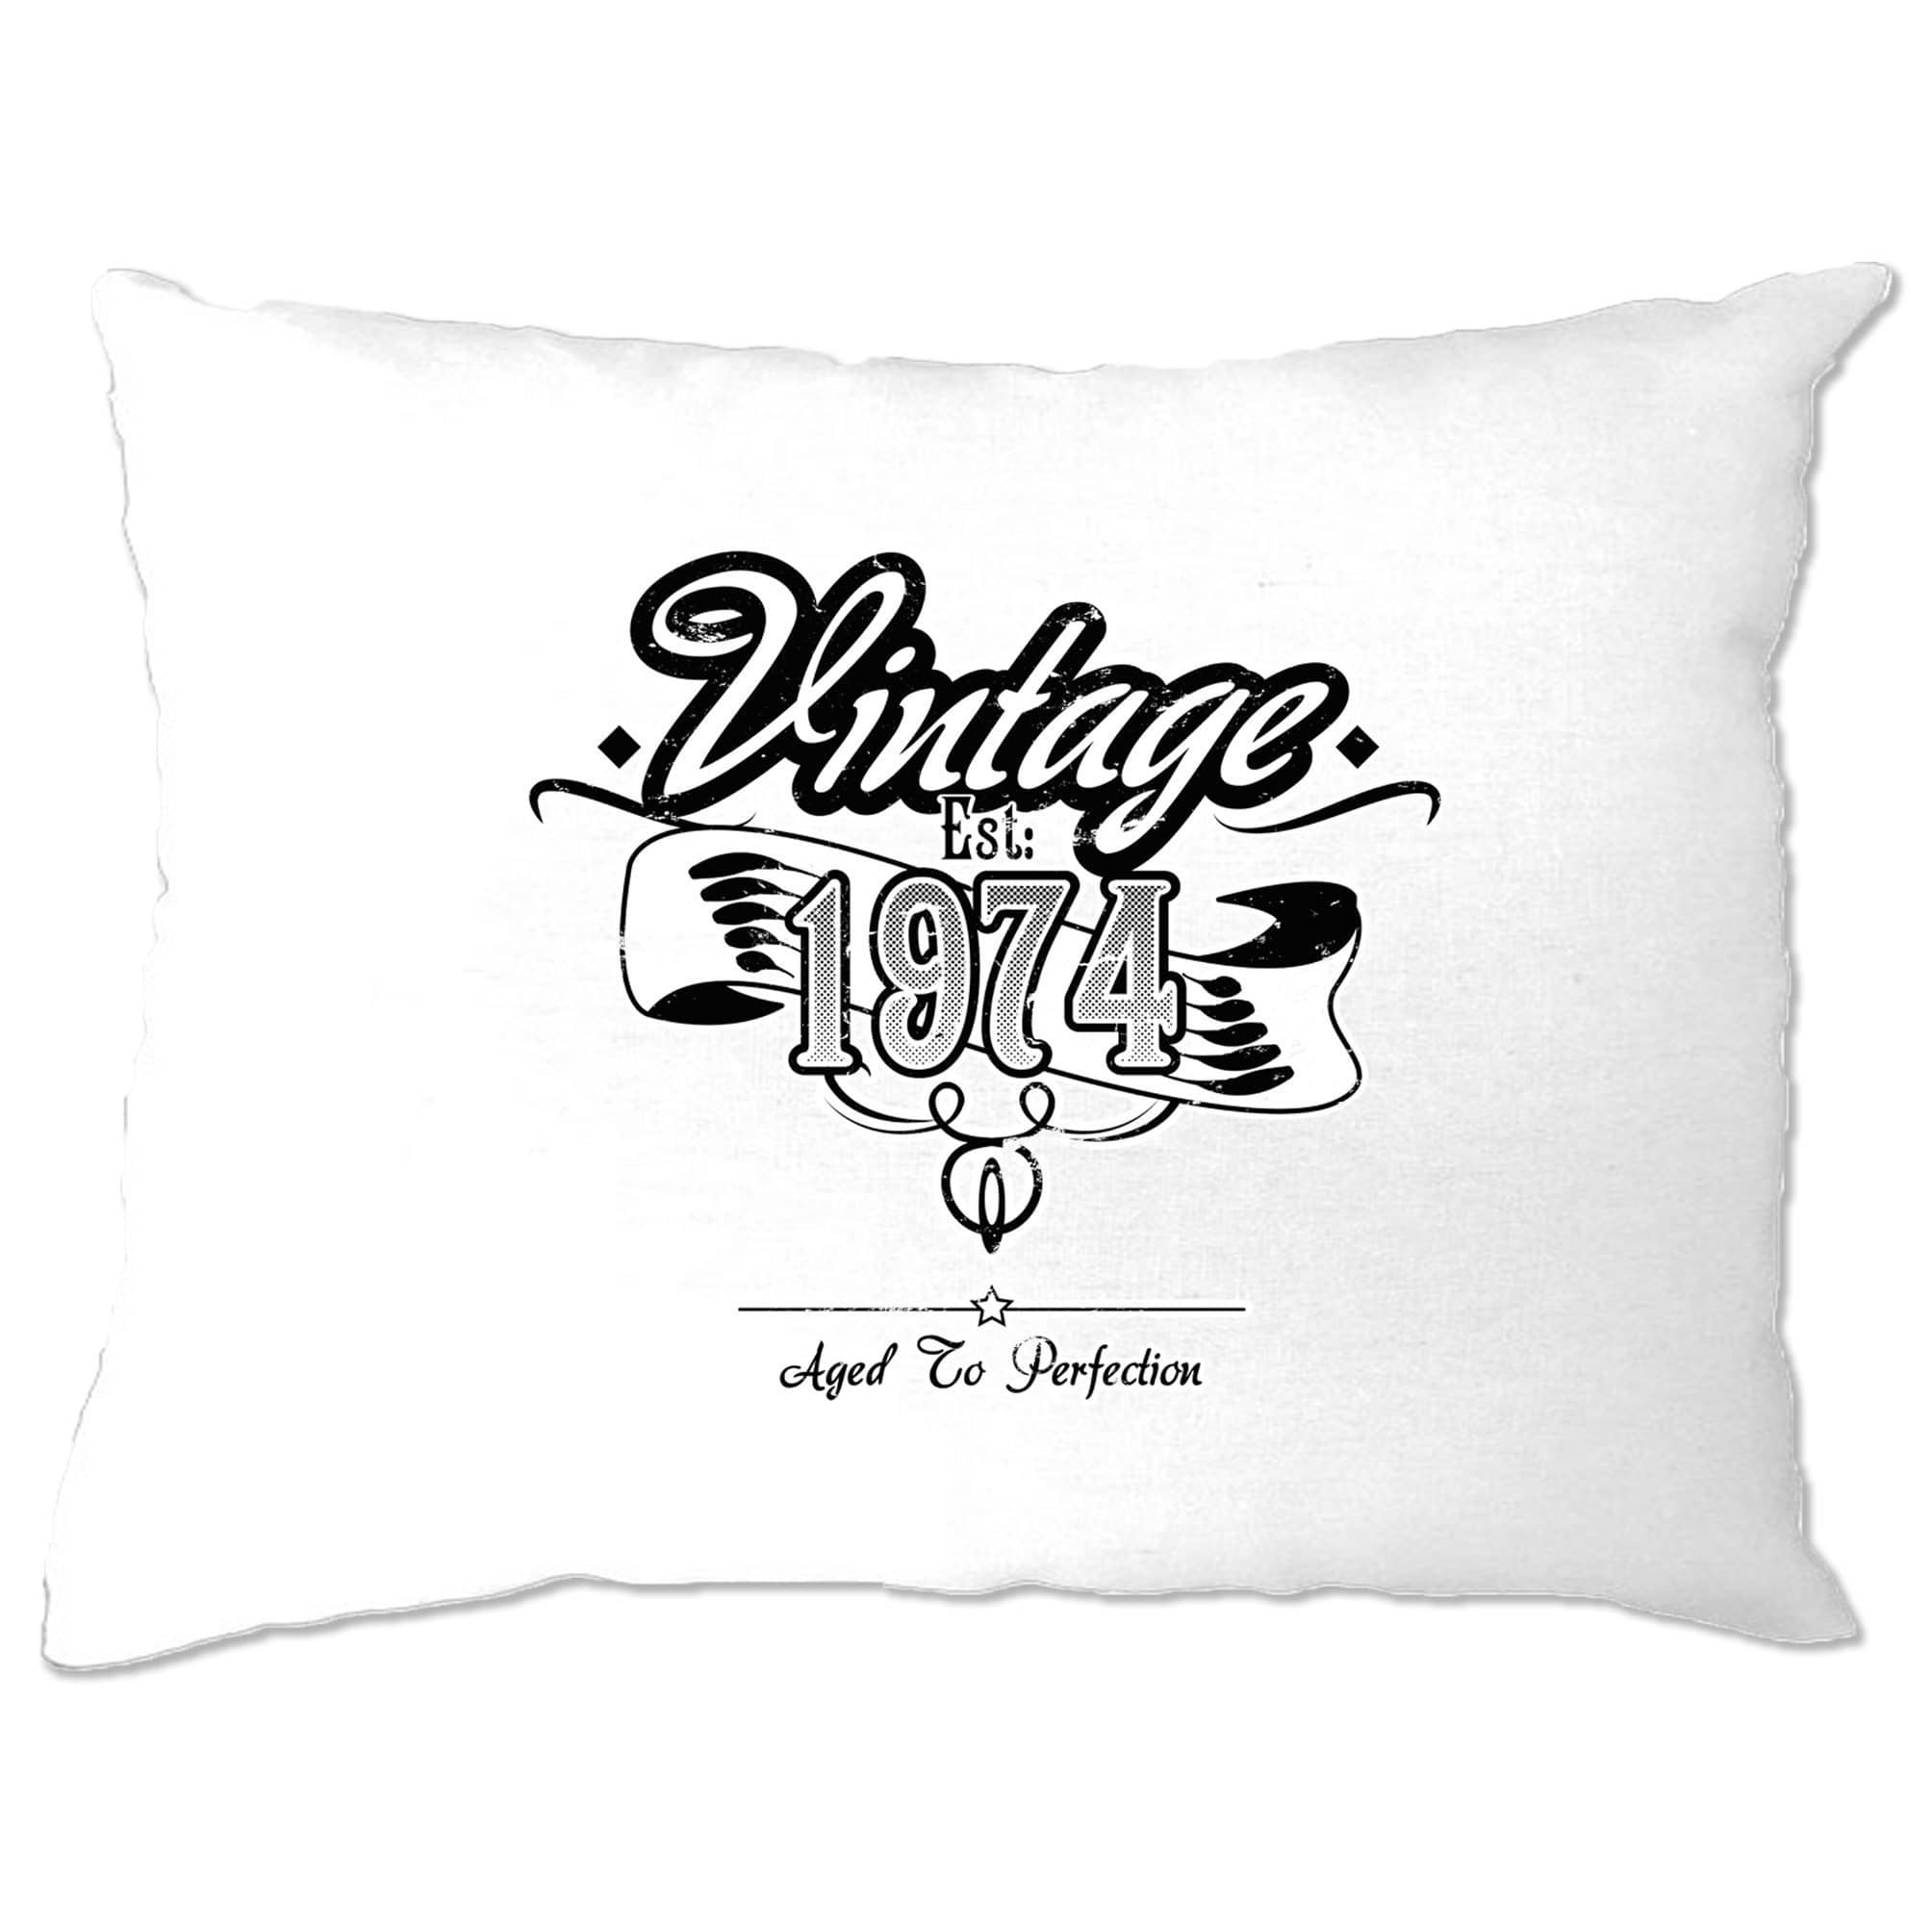 Birthday Pillow Case Vintage Est 1974 Aged To Perfection